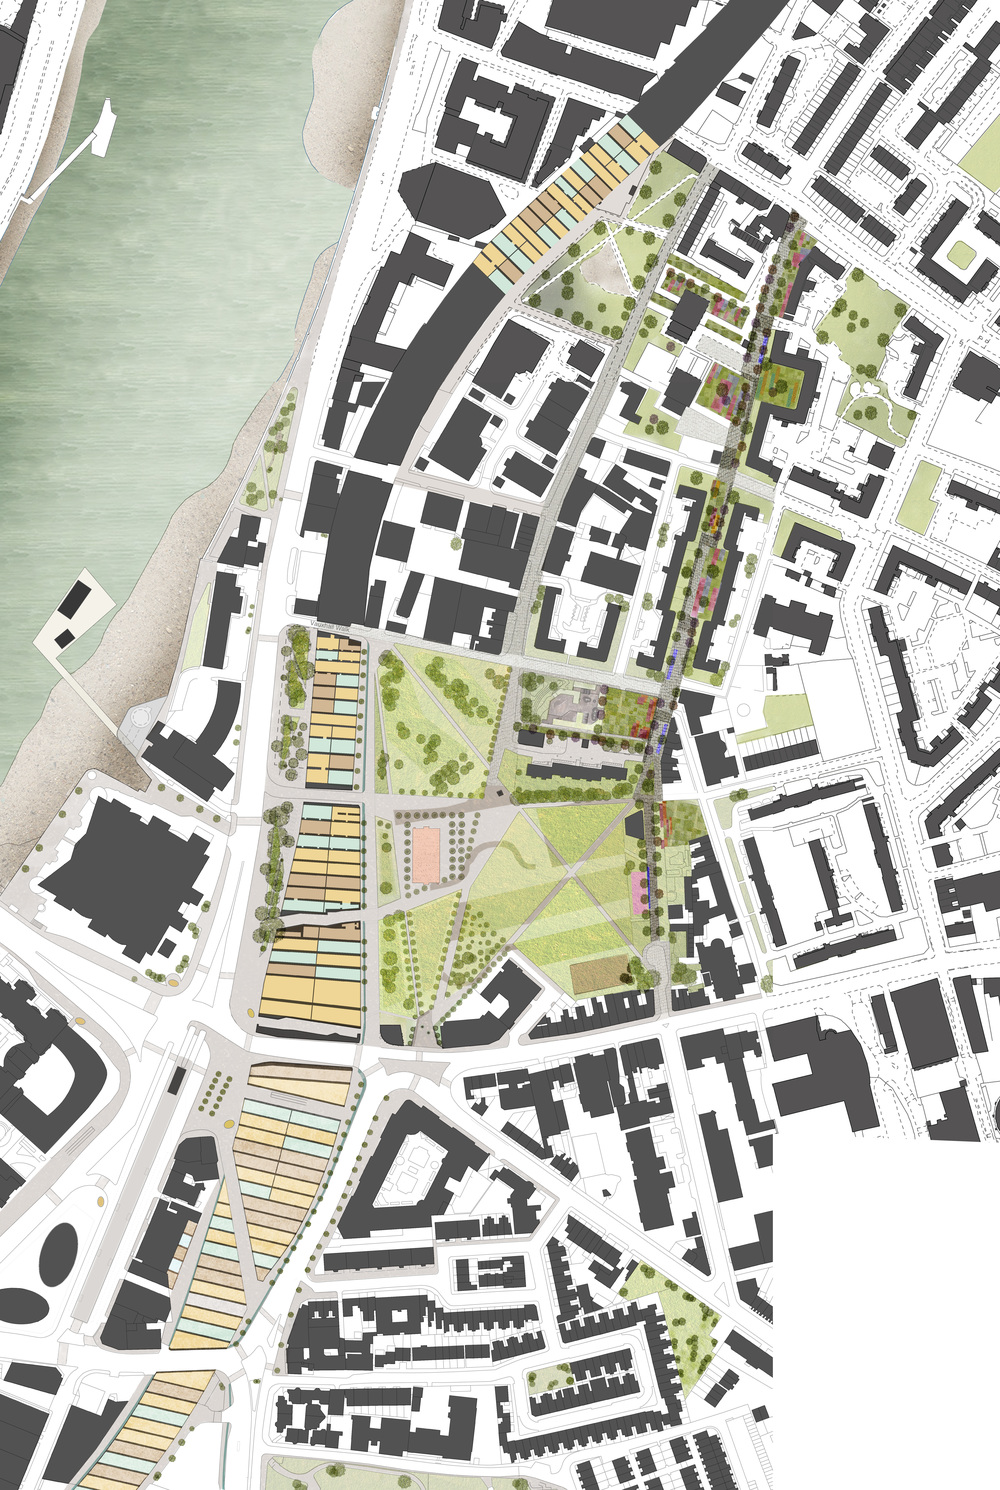 The Proposed Linear Park joining several green spaces in Prince's Ward